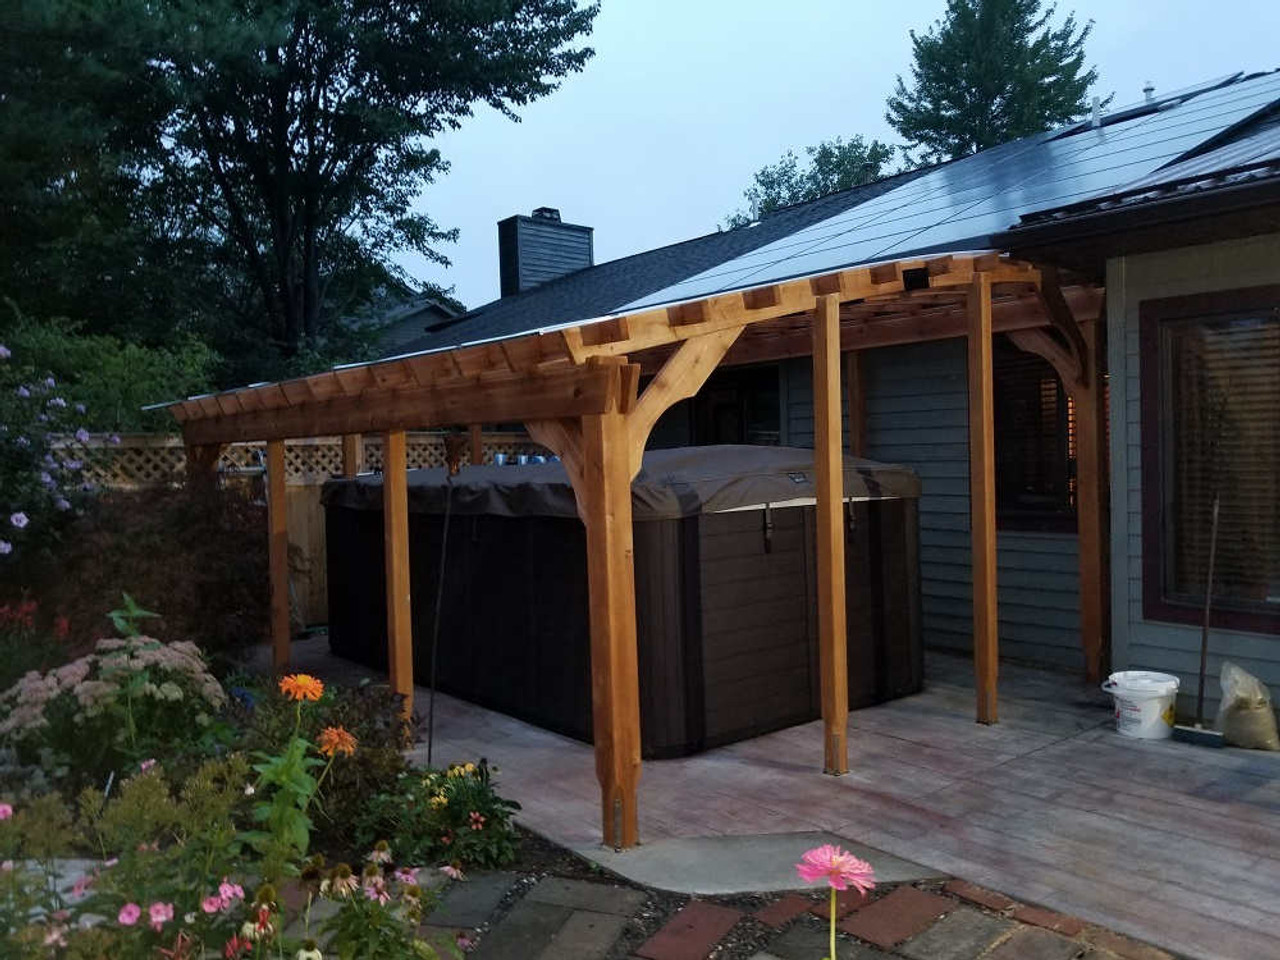 12x18 Custom Arched Cedar Pergola Kit Hot Tub Enclosure - Slingerlands, New York